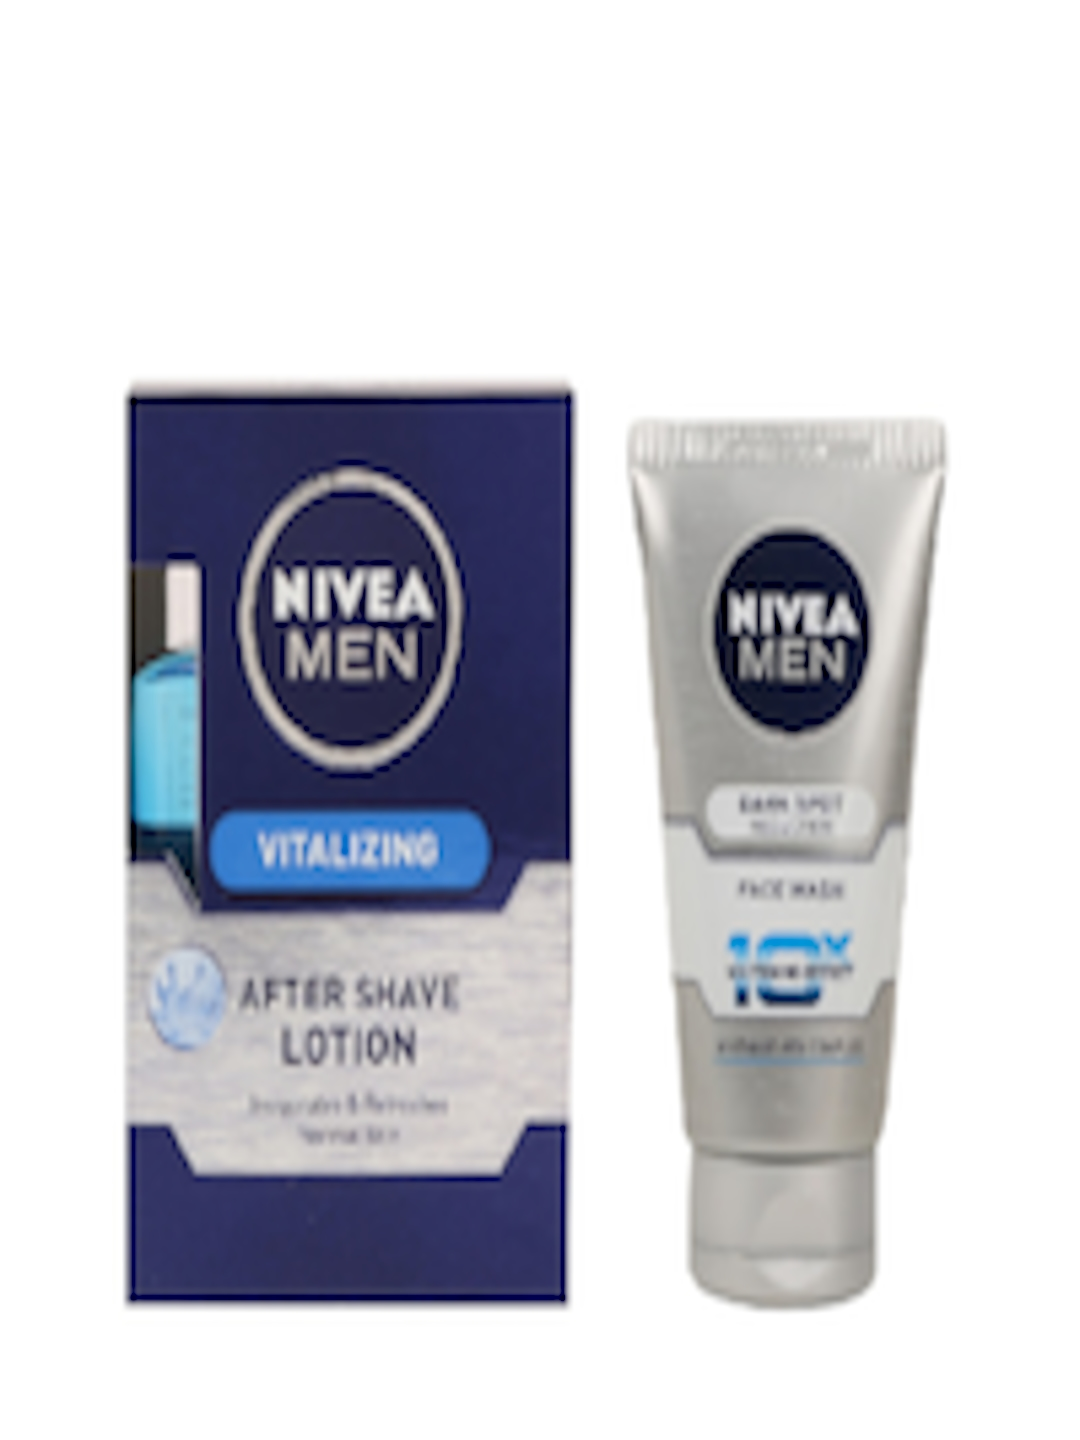 Buy Nivea Men Vitalising After Shave Lotion & Facewash Grooming Kit -  - Personal Care for Men